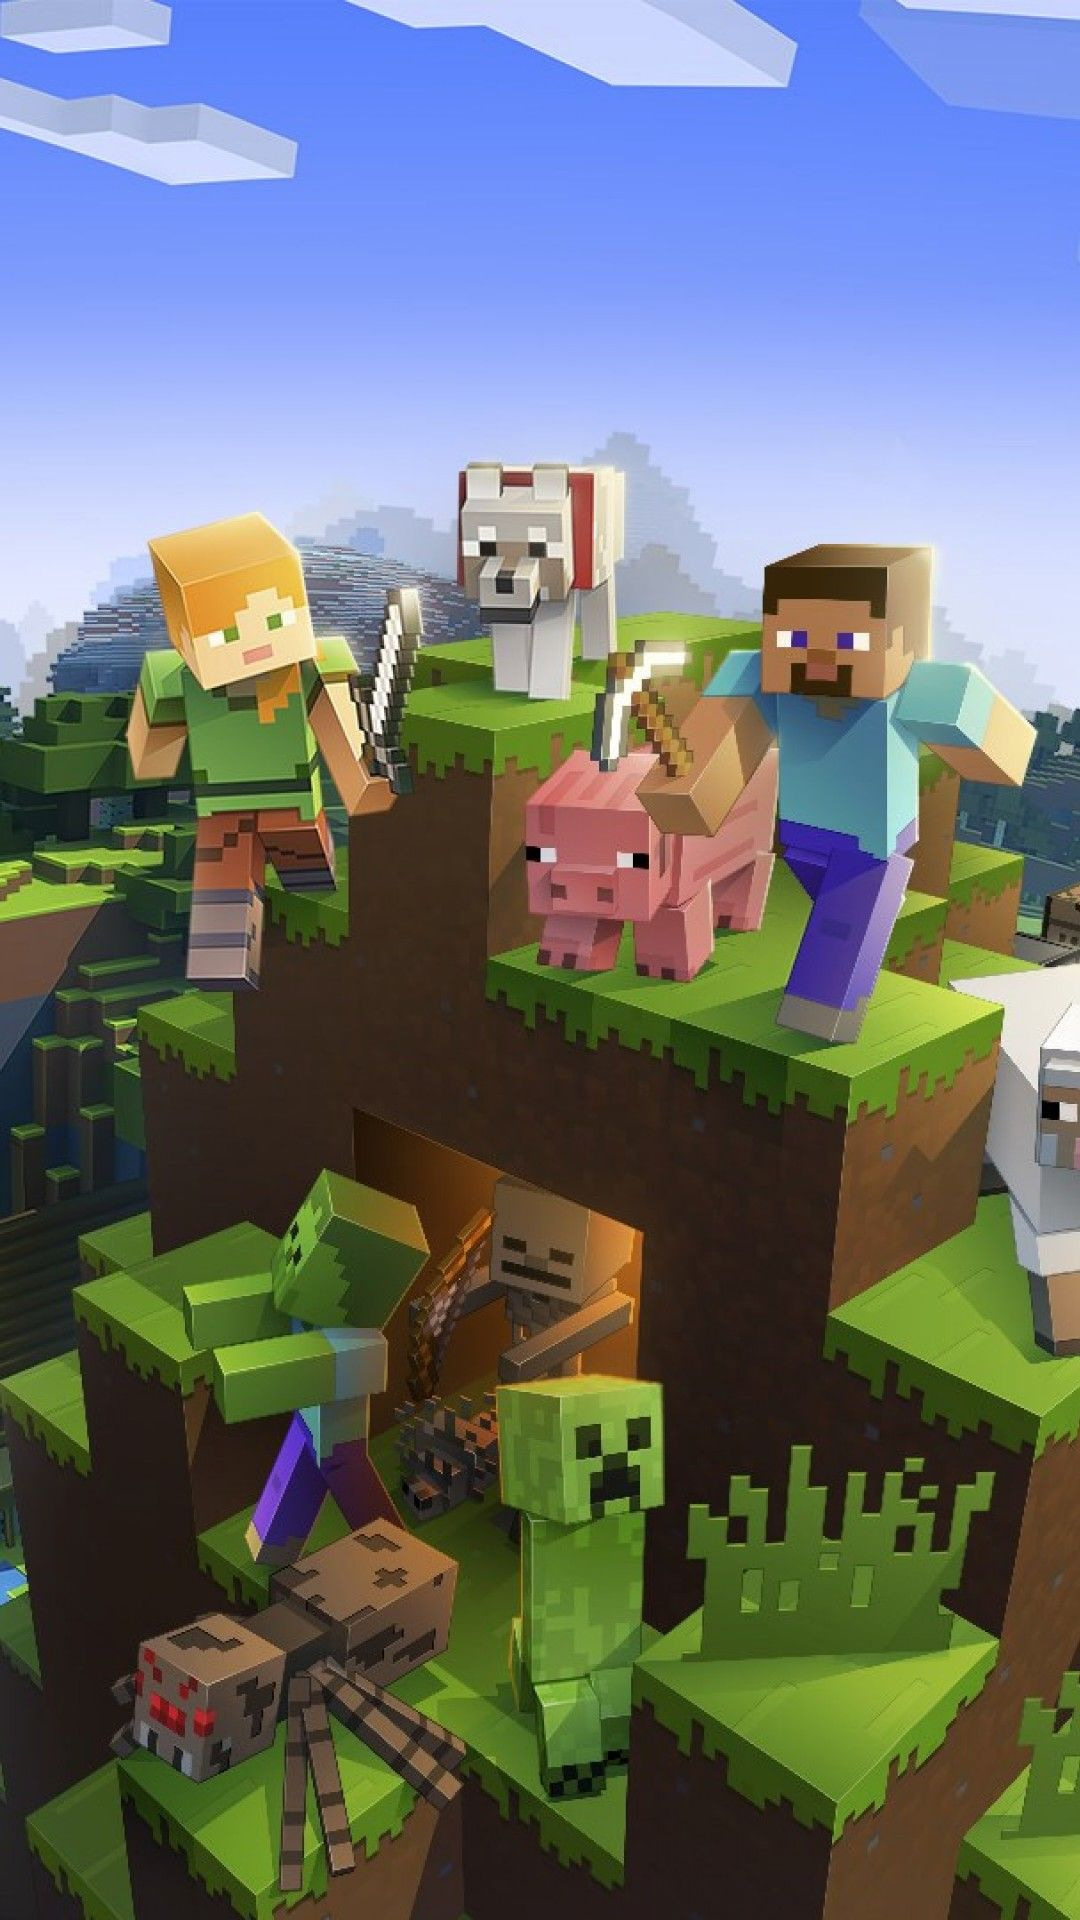 iPhone Minecraft Wallpaper – Inspiring Design For Your iPhone